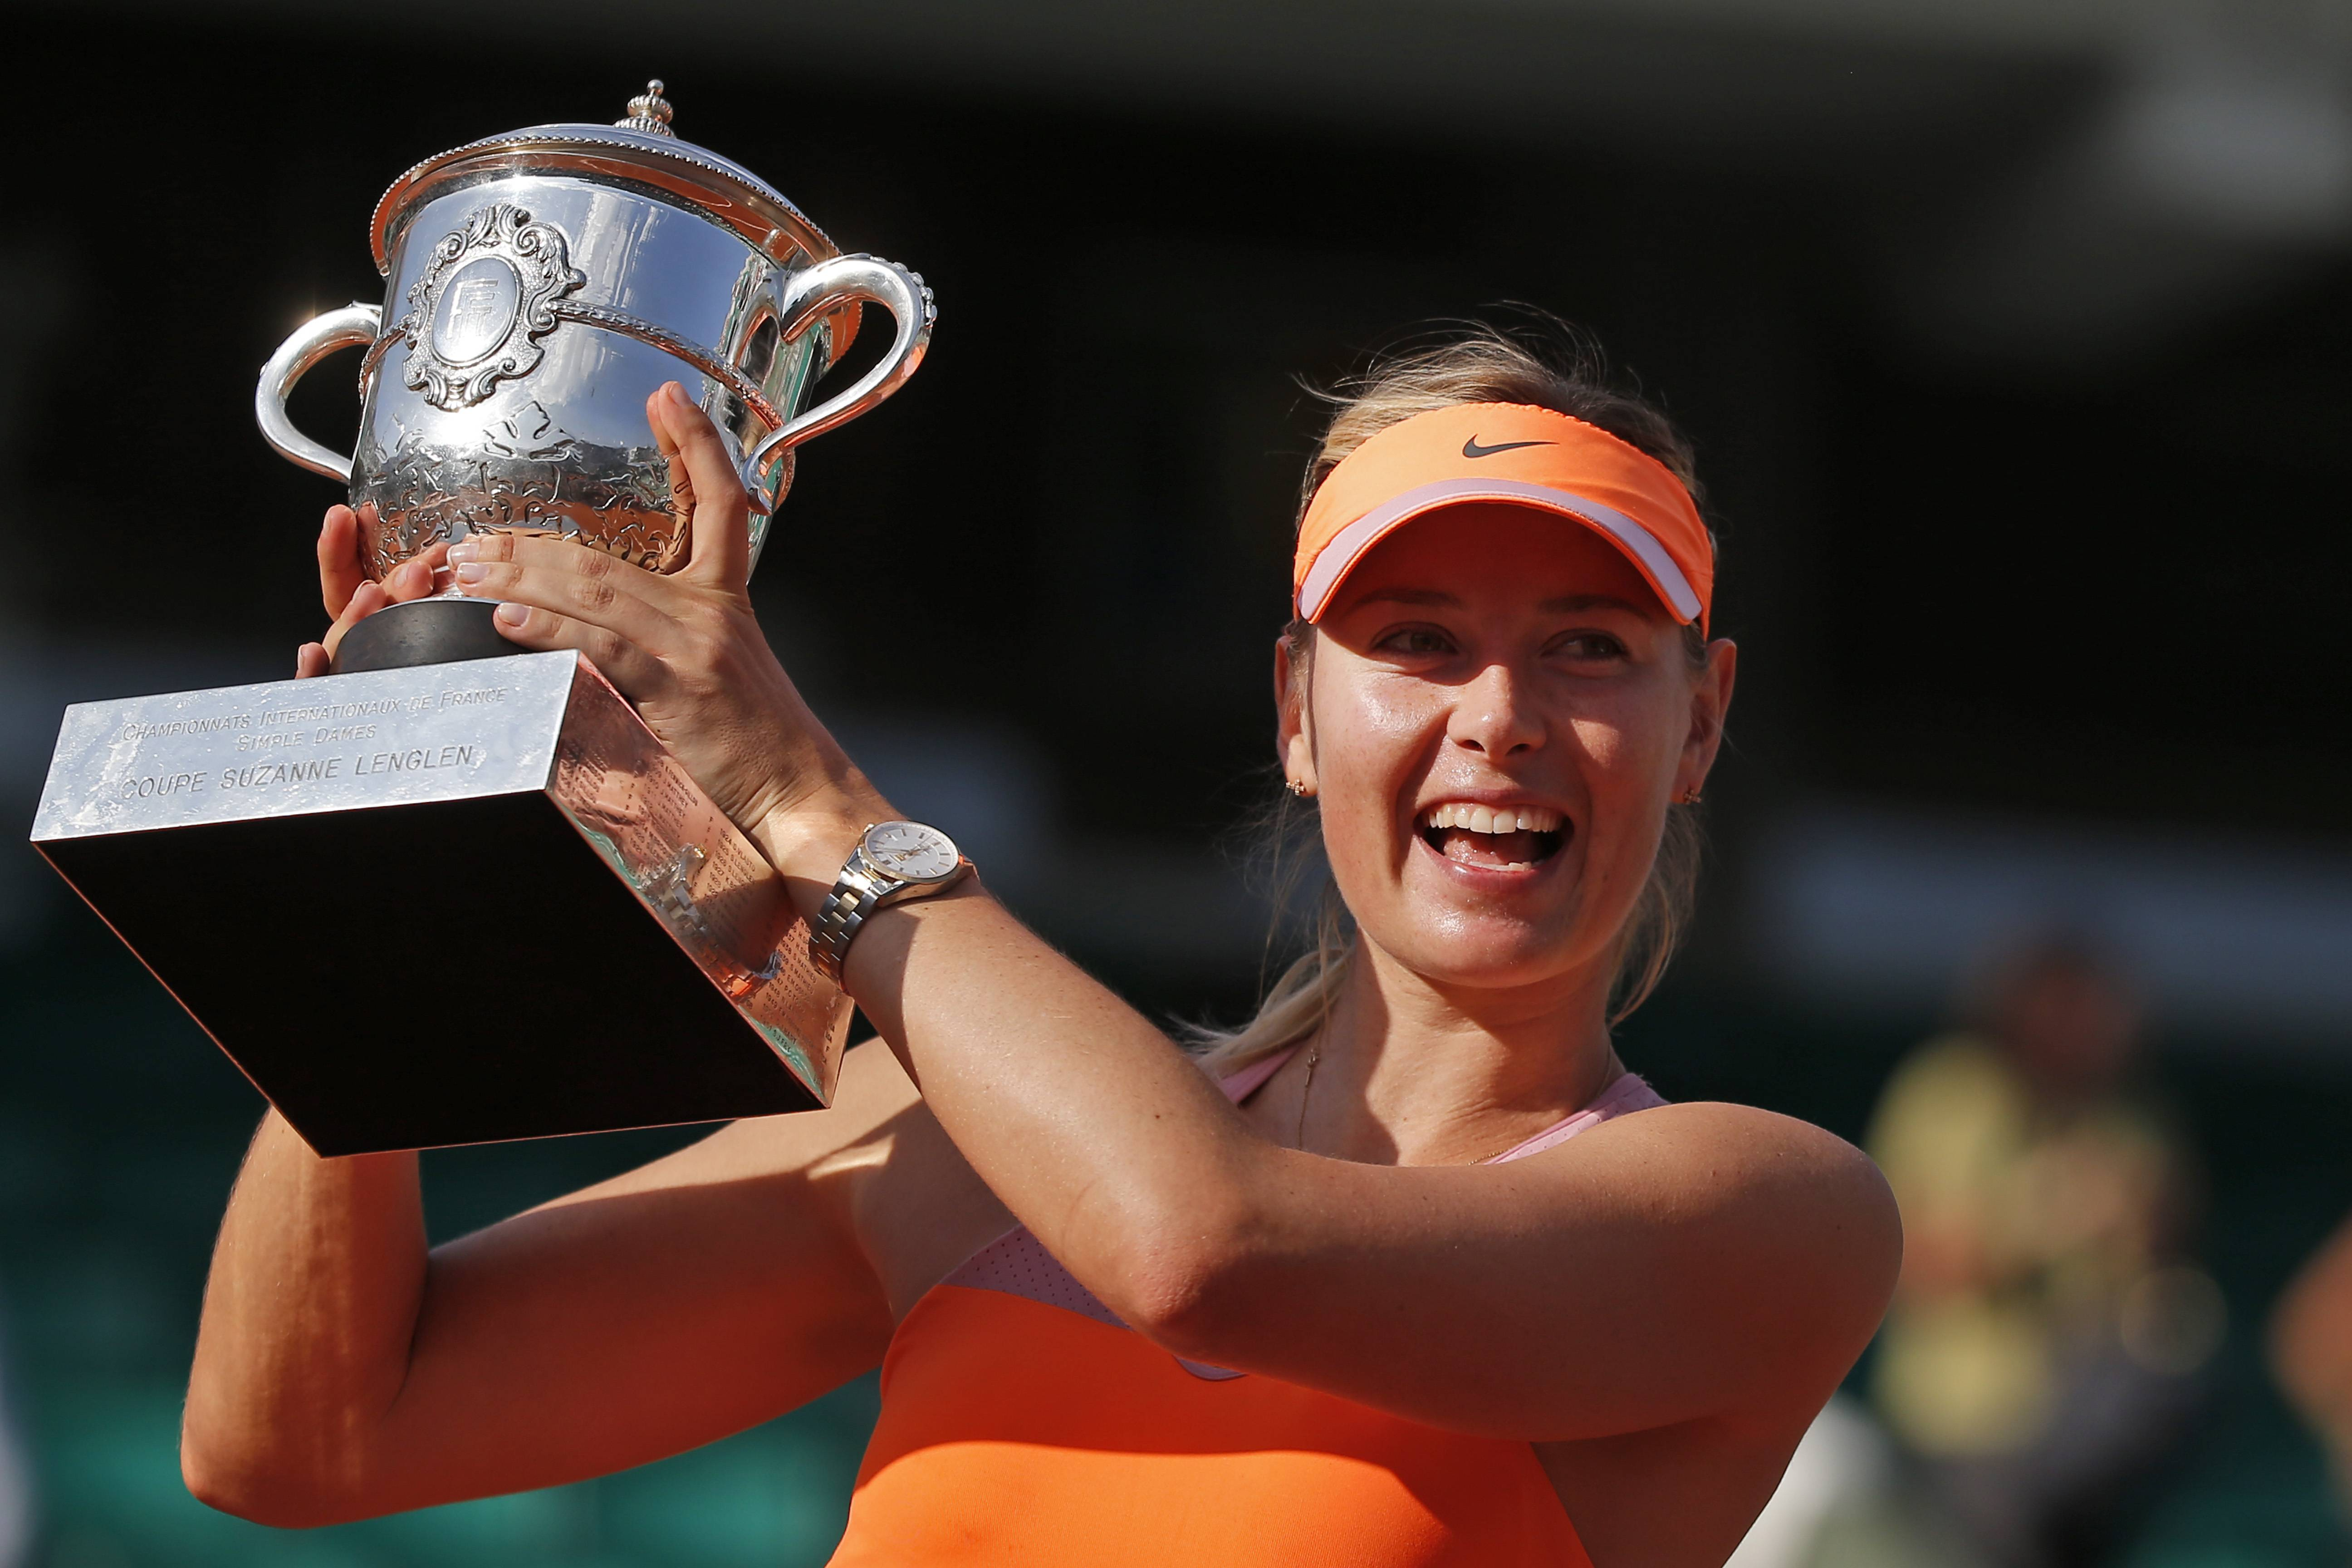 Russia's Maria Sharapova, who recently won the French Open tennis tournament, will launch a new perfume with Avon Luck.